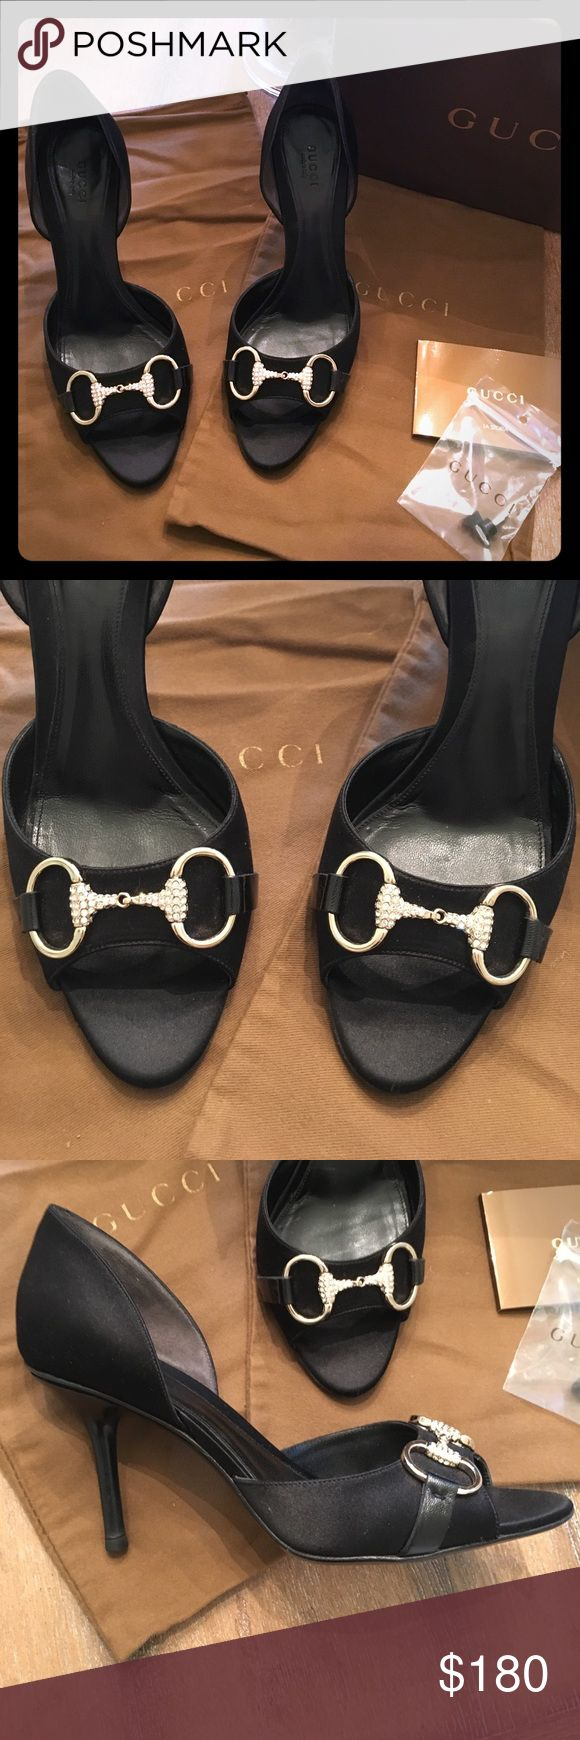 Gucci black satin heel w/ signature crystal buckle Gorgeous black satin Guccis. Worn a few times. In great visible condition. Heels have damage as shown in pic. Box, protective pouches and replacement heel stoppers included. Gucci Shoes Heels